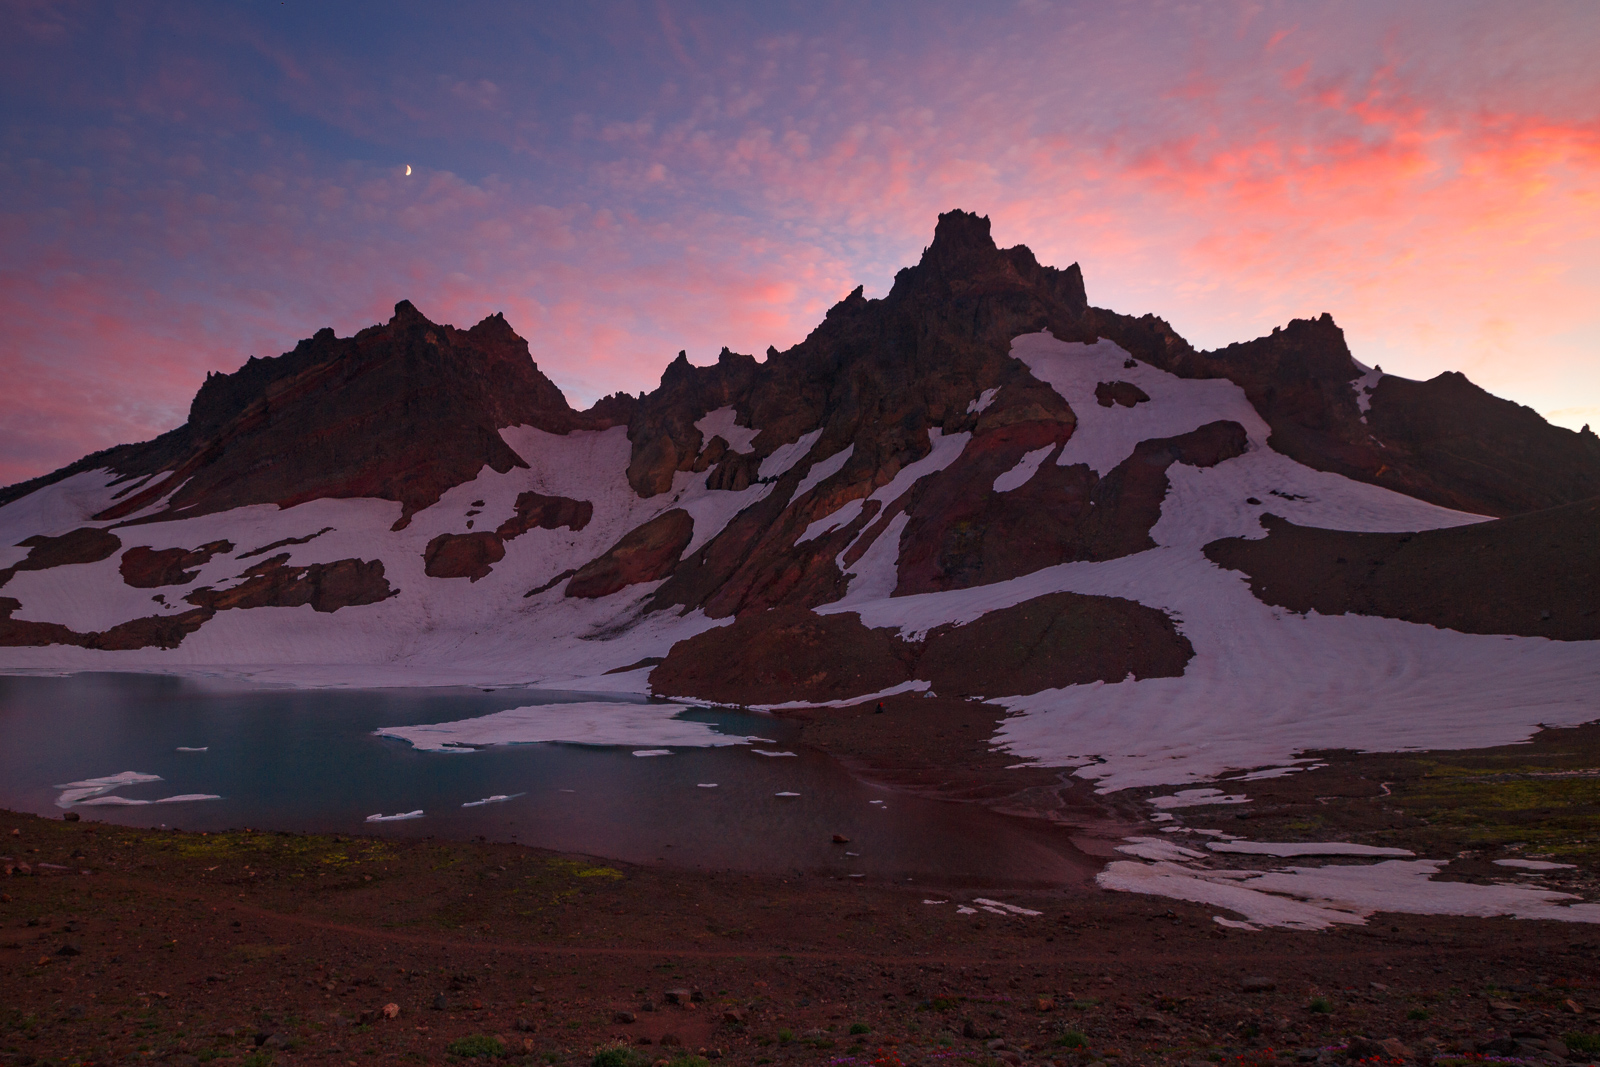 An alpine region of Central Oregon after sunset. No filters used.   ISO 250, 16mm, f/9.0, 6""